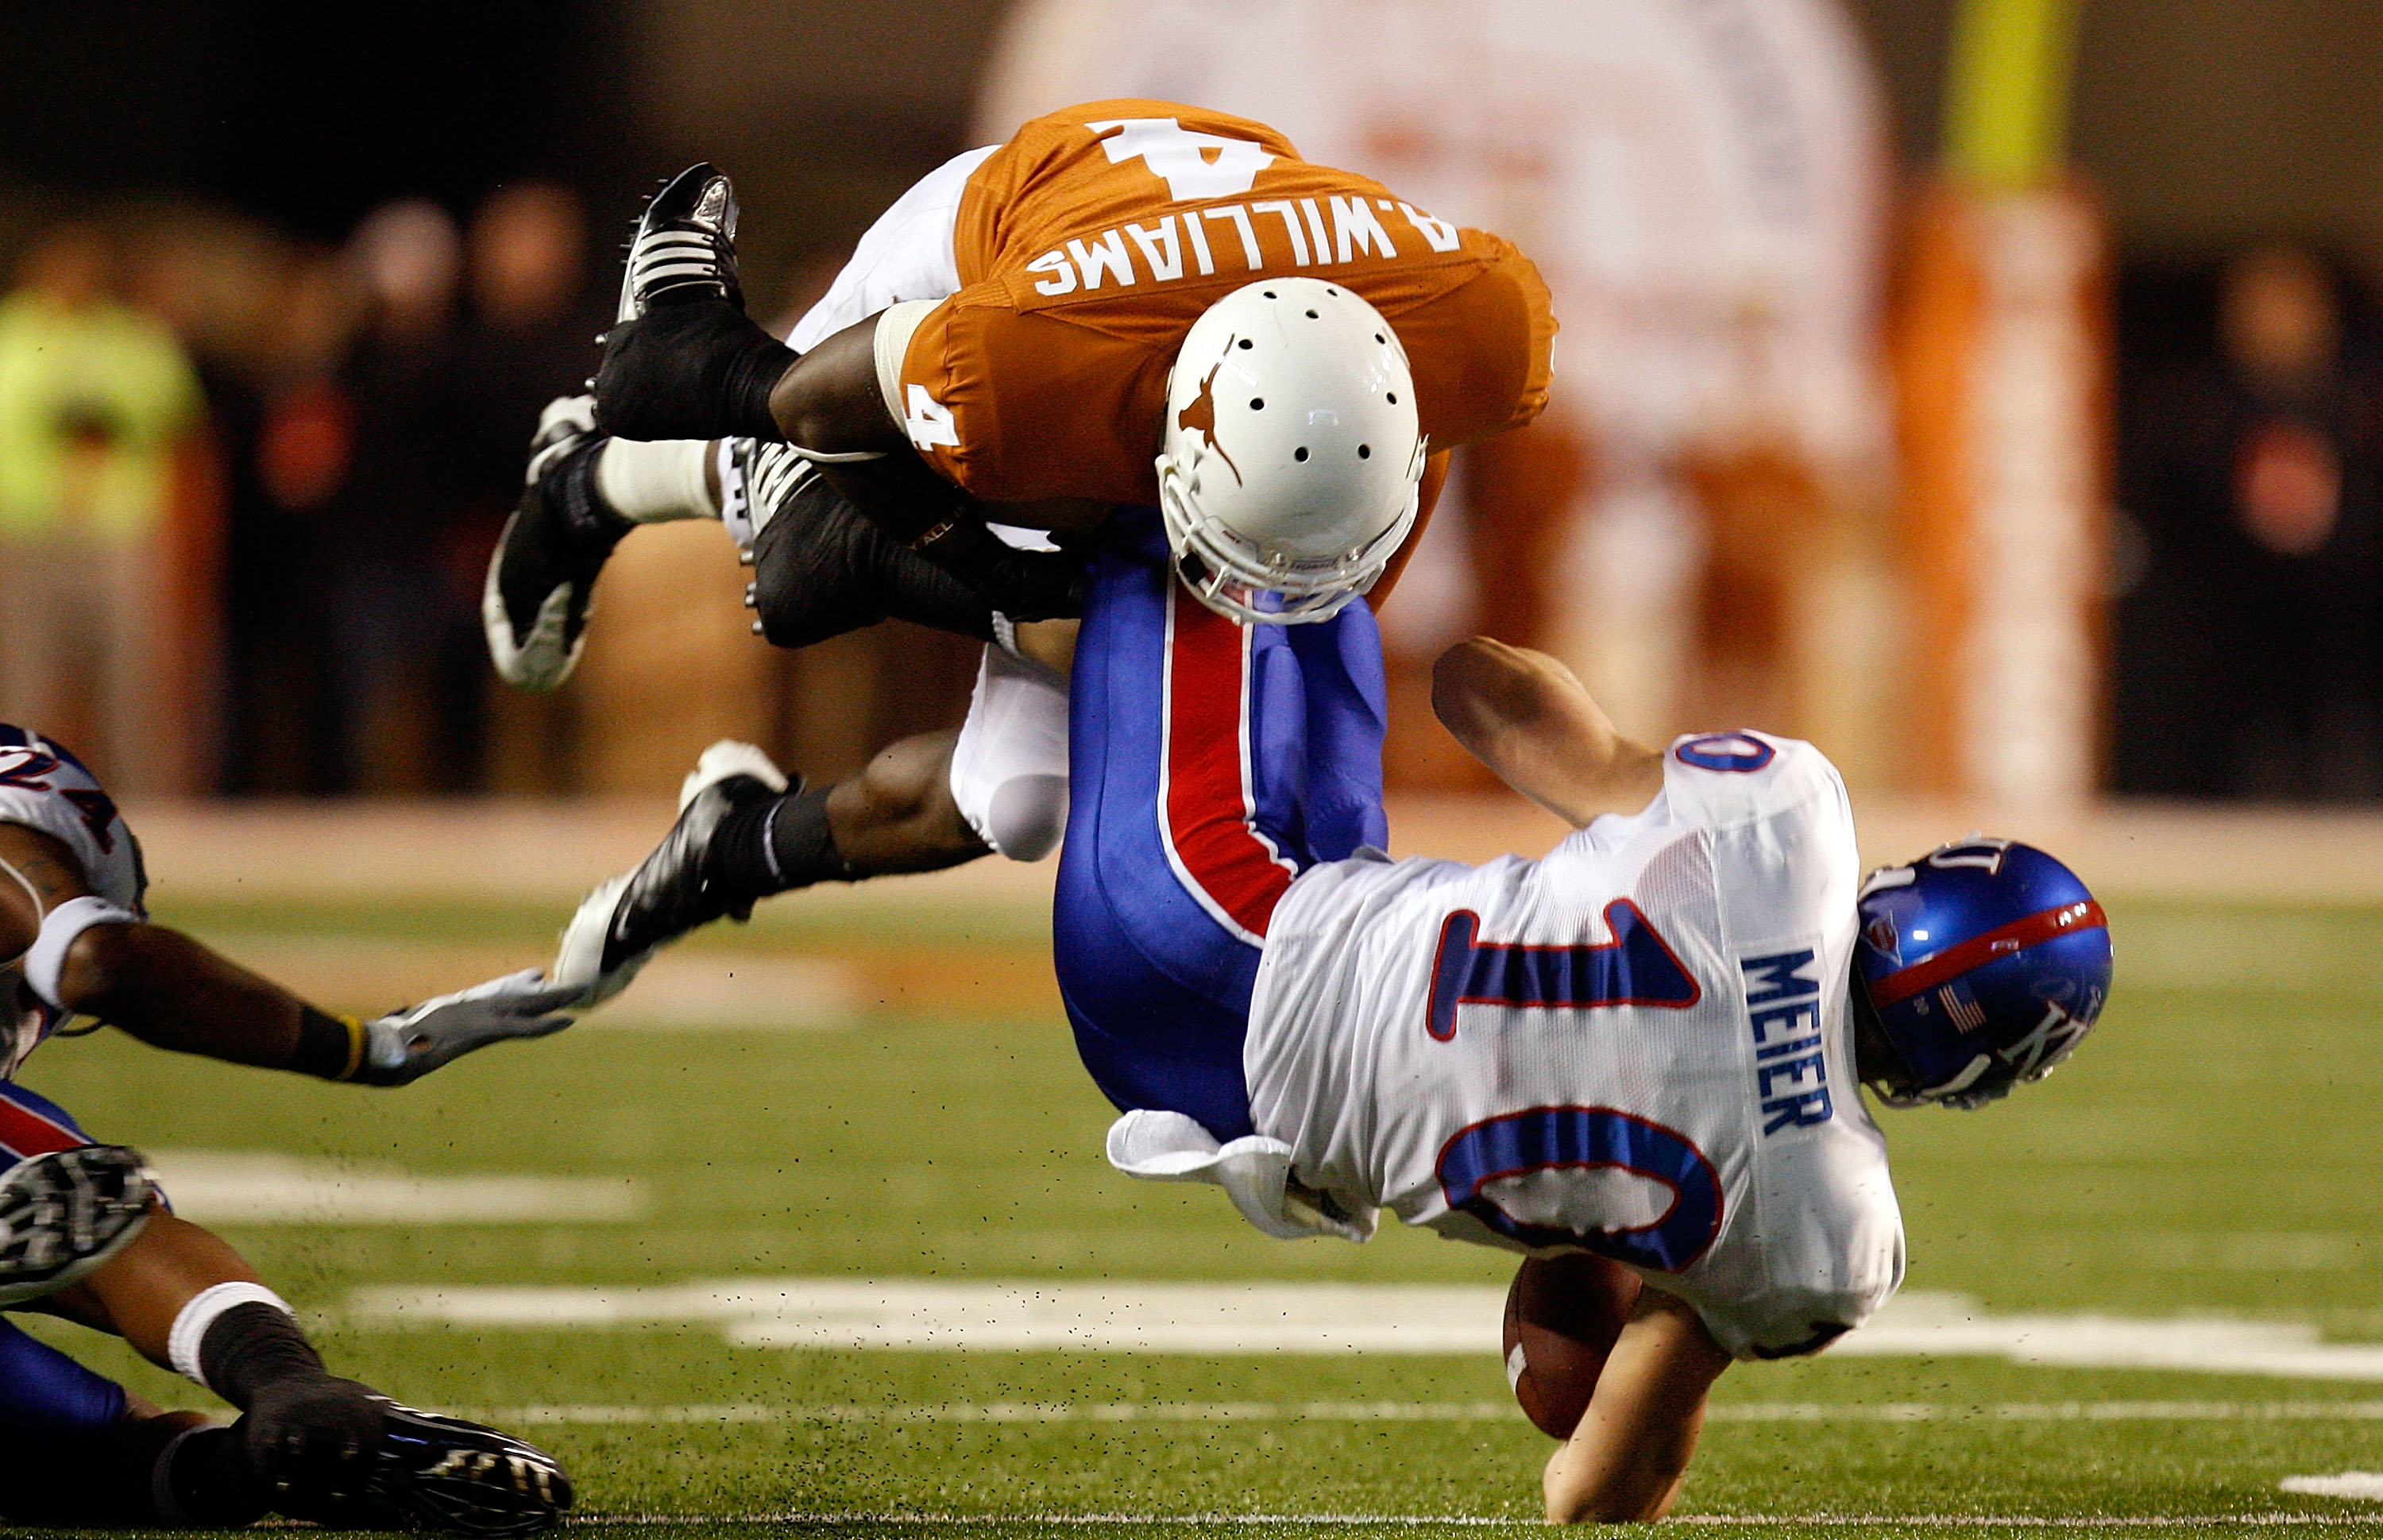 AUSTIN, TX - NOVEMBER 21:  Wide receiver Kerry Meier #10 of the Kansas Jayhawks is tackled by Aaron Williams #4 of the Texas Longhorns at Darrell K Royal-Texas Memorial Stadium on November 21, 2009 in Austin, Texas.  (Photo by Ronald Martinez/Getty Images